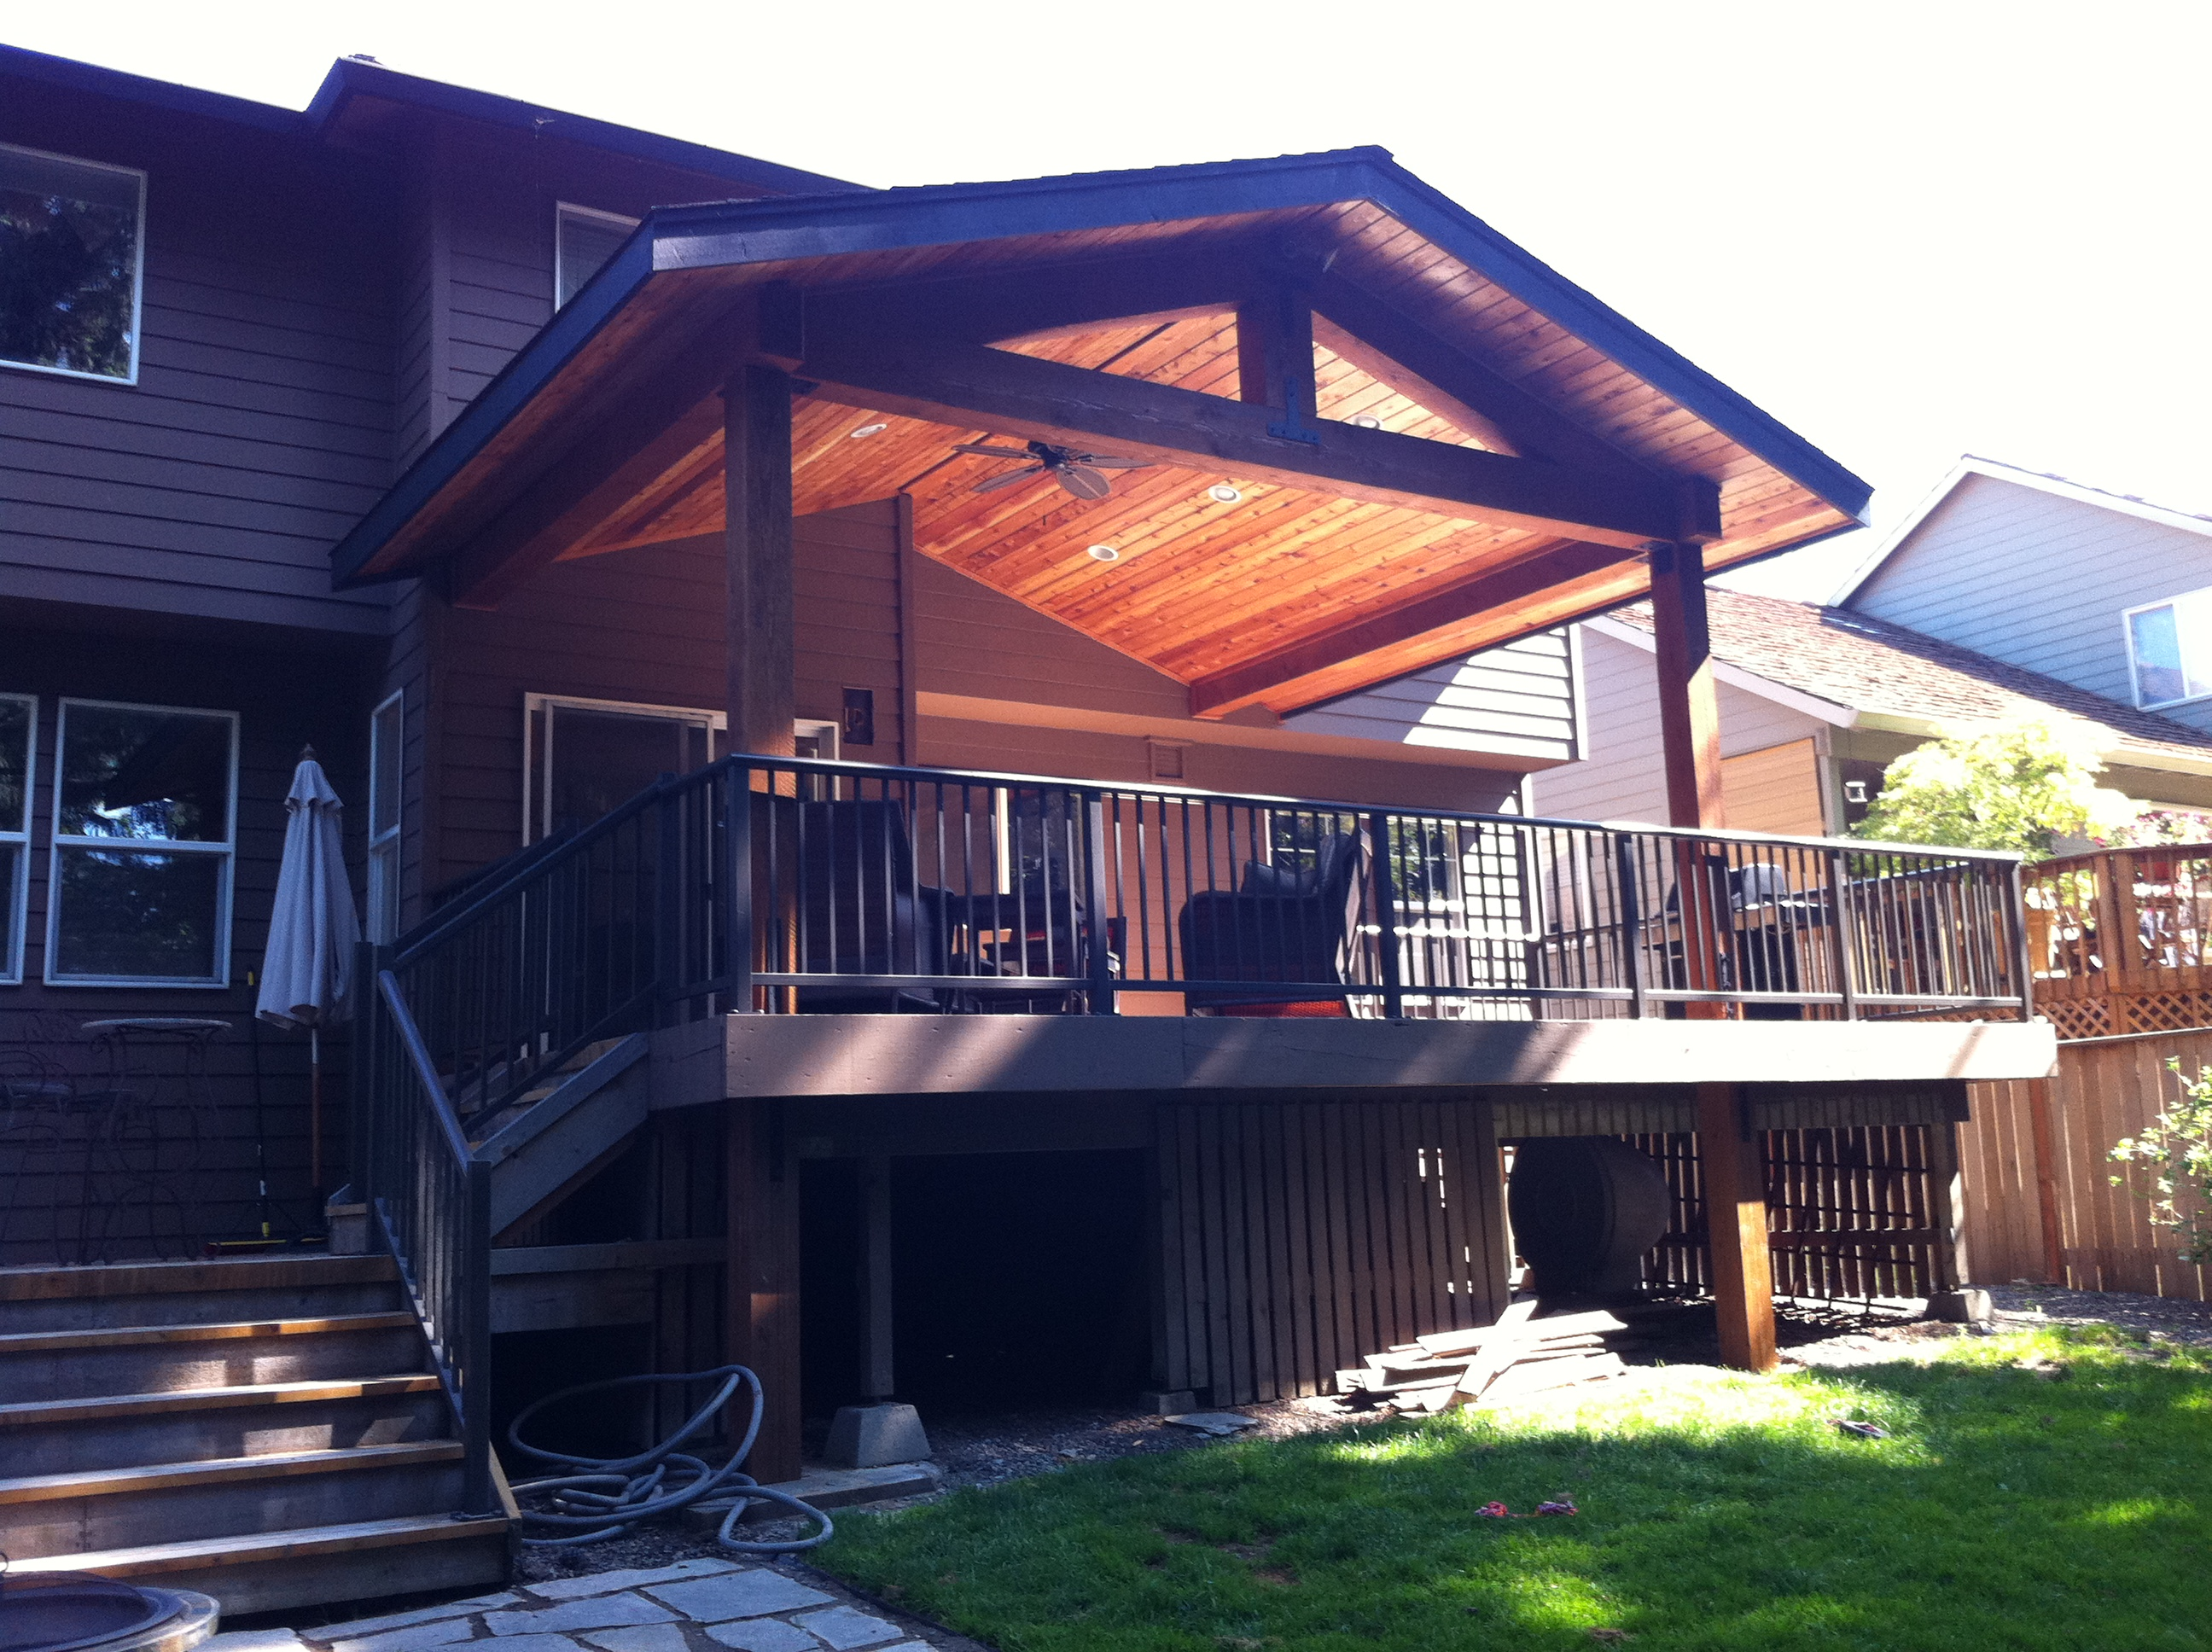 ceiling fan kitchen anti fatigue mats timber patio cover   indy construction, llc